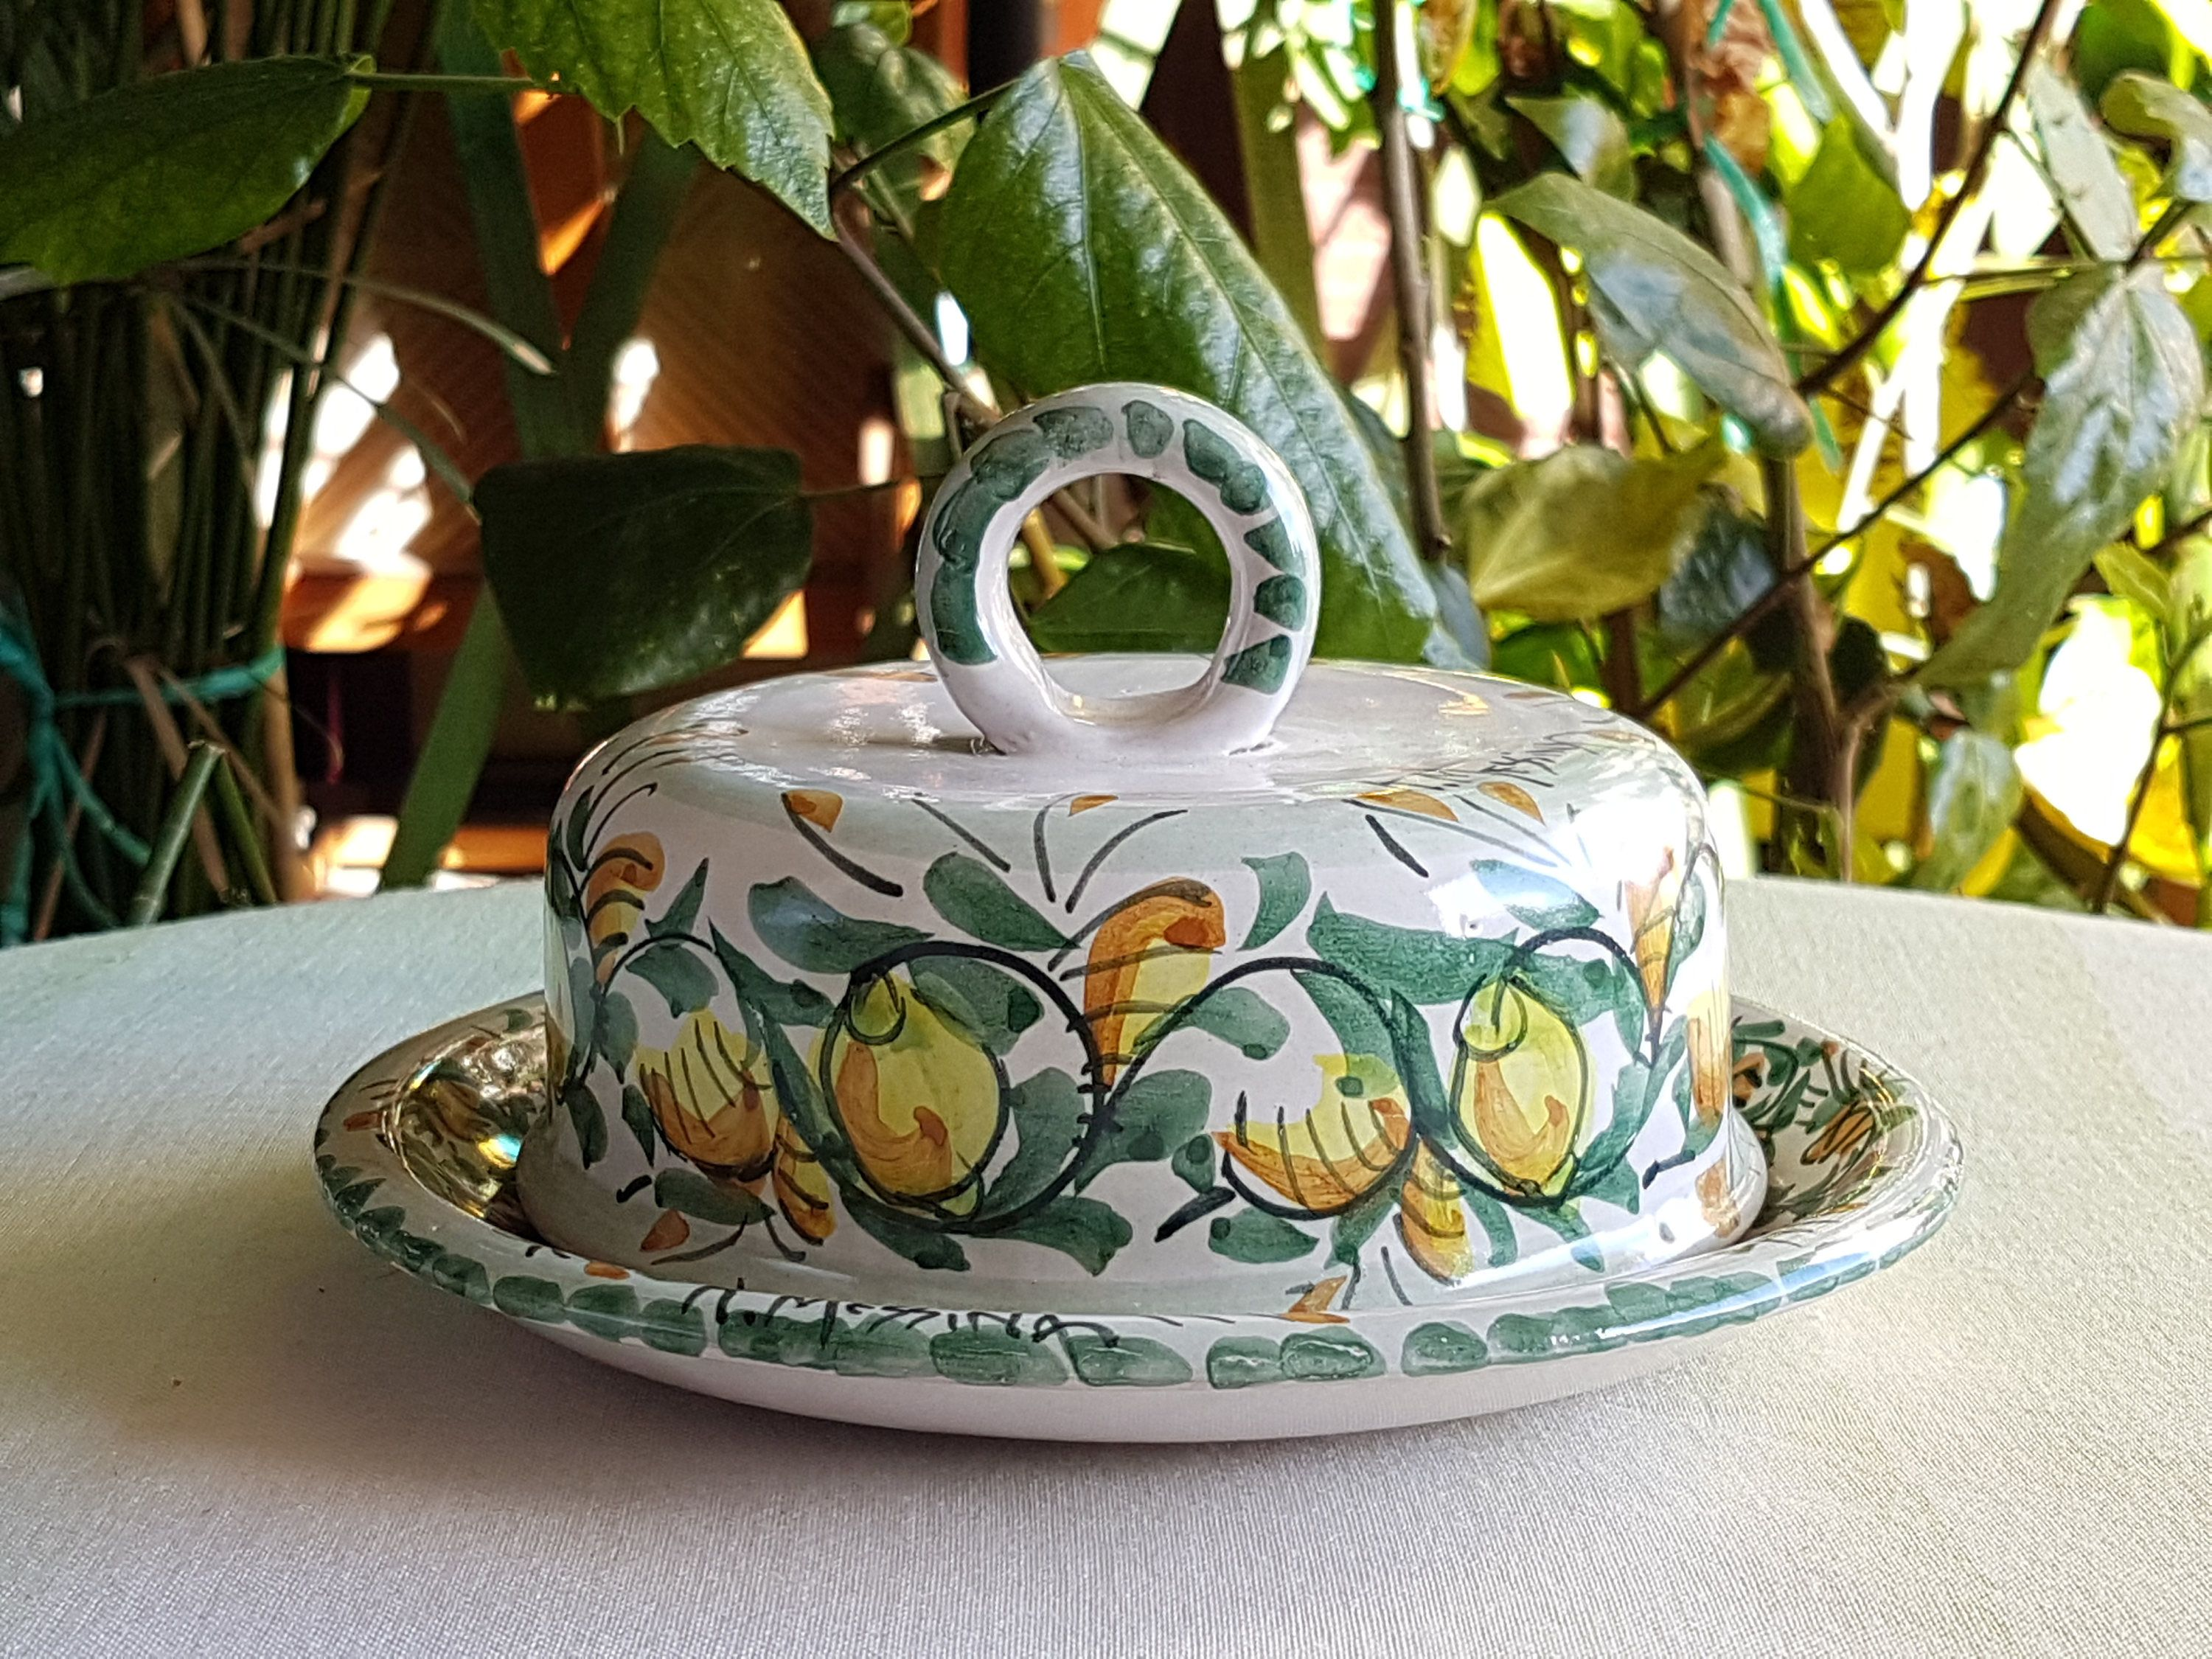 Sicilian ceramic butter dish. round ceramic butter dish decorated by